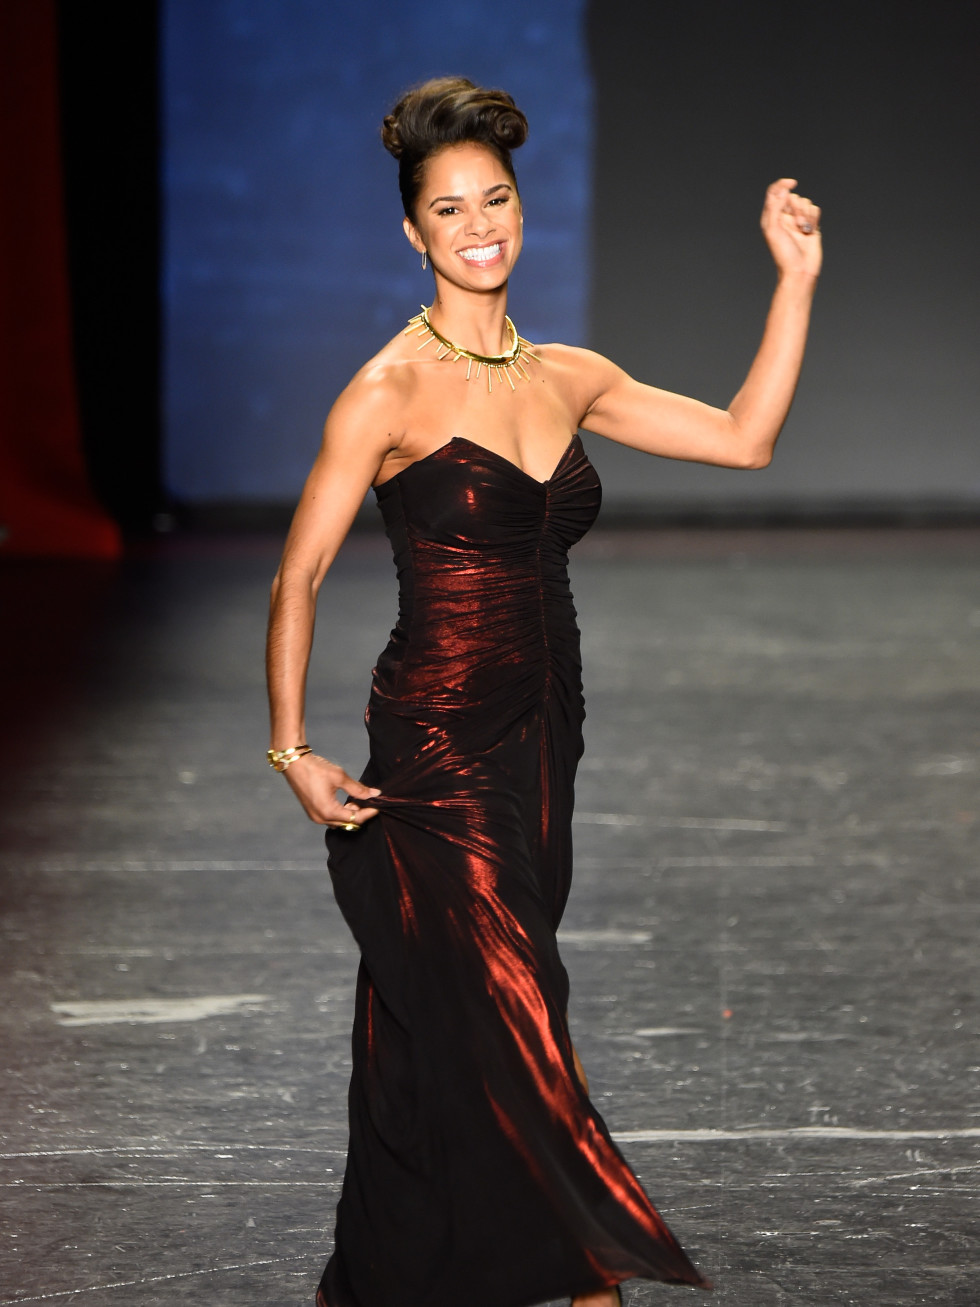 Misty Copeland at American Heart Association Go Red For Women Red Dress Collection 2016